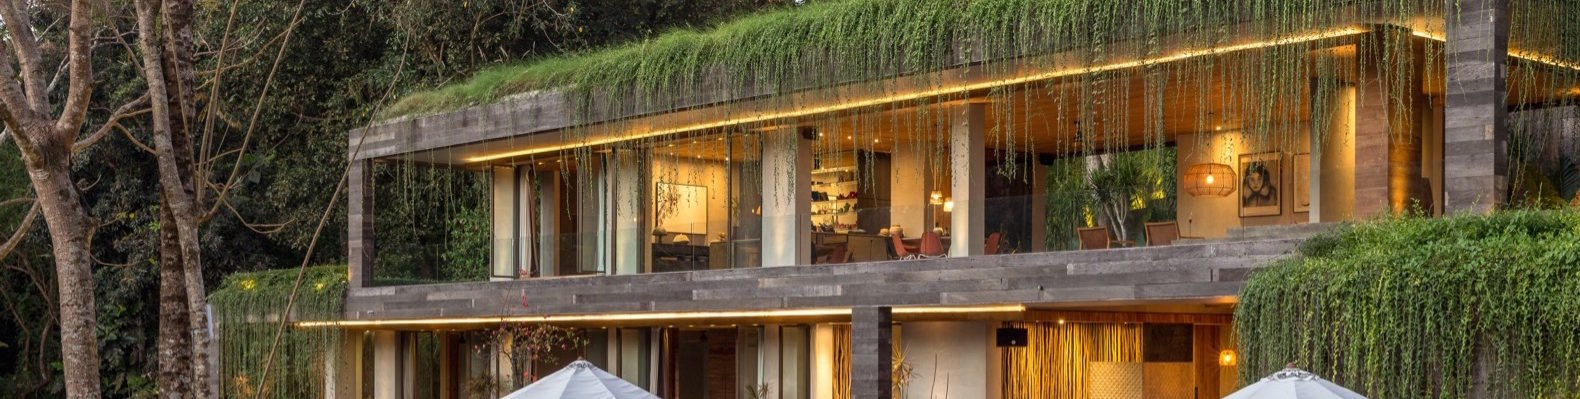 Home with green roof that has vegetation draping over and in front of the second floor balconies